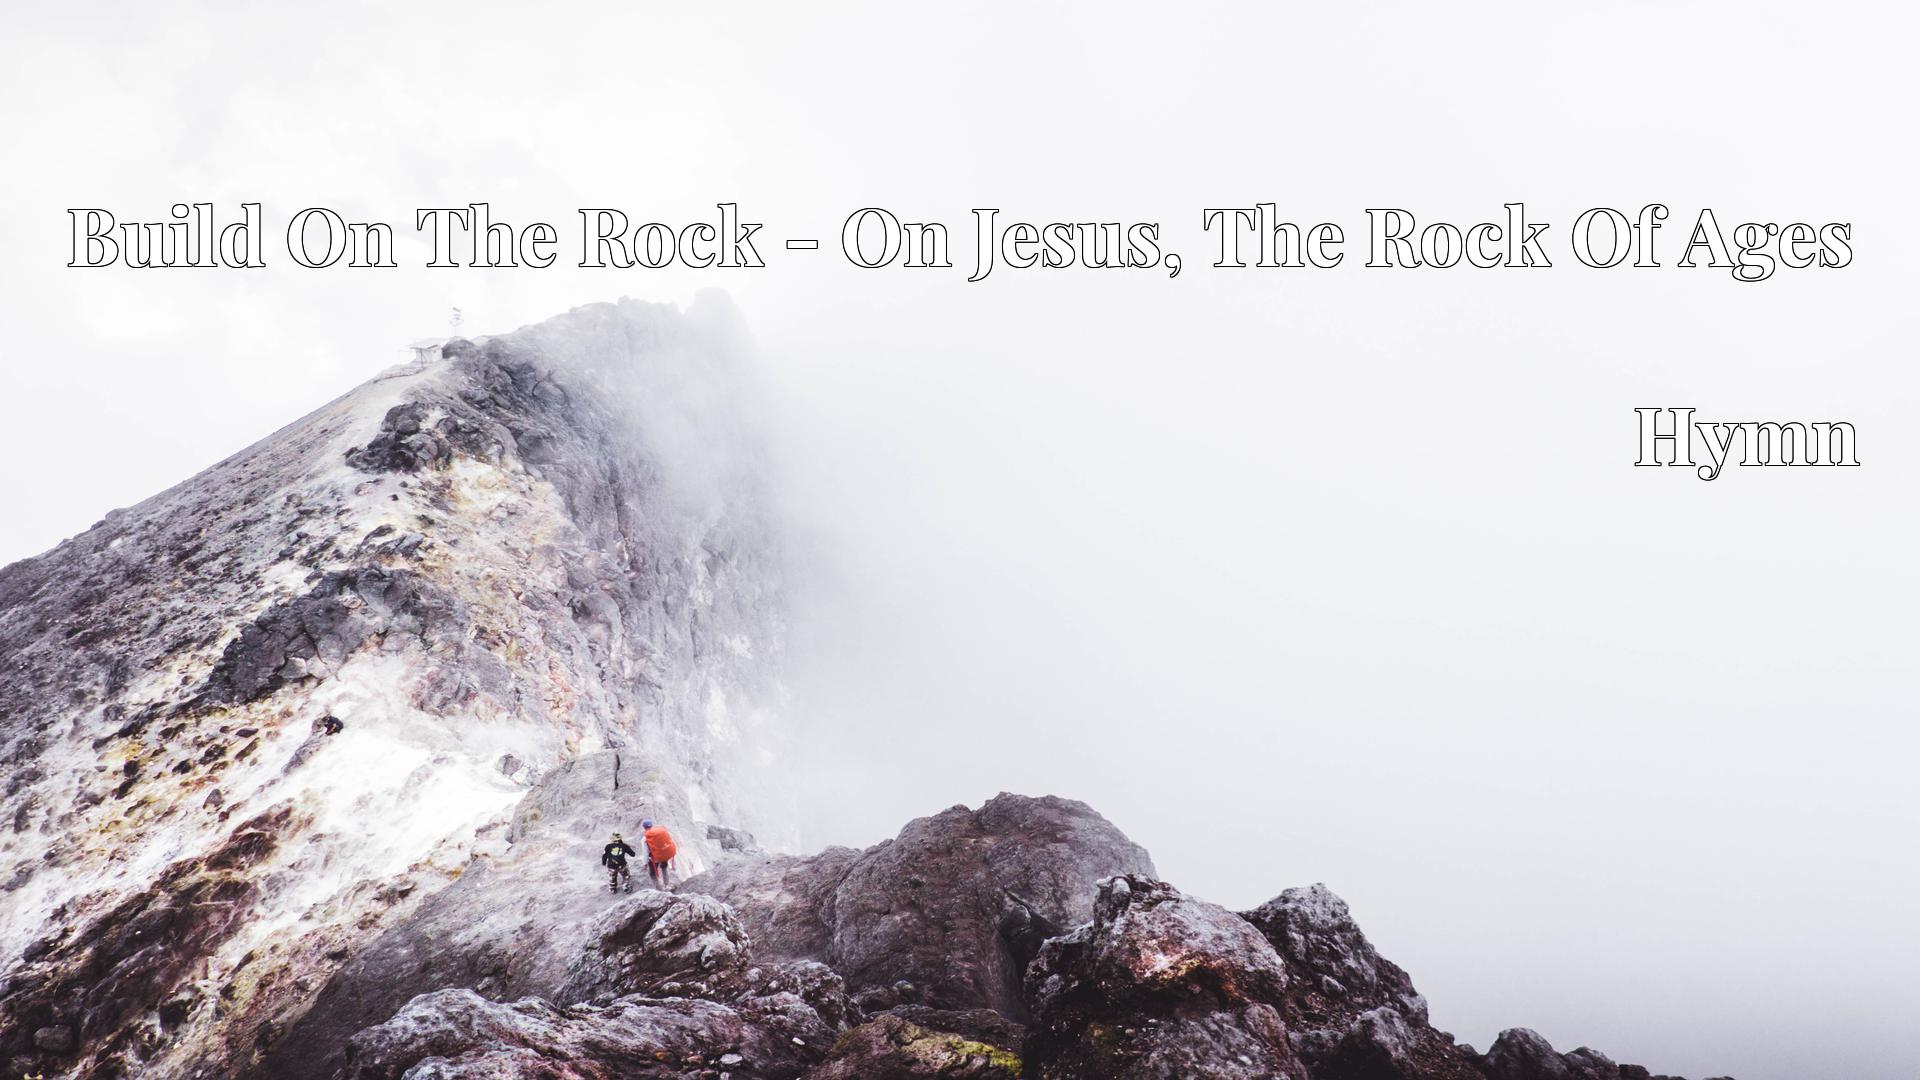 Build On The Rock - On Jesus, The Rock Of Ages - Hymn